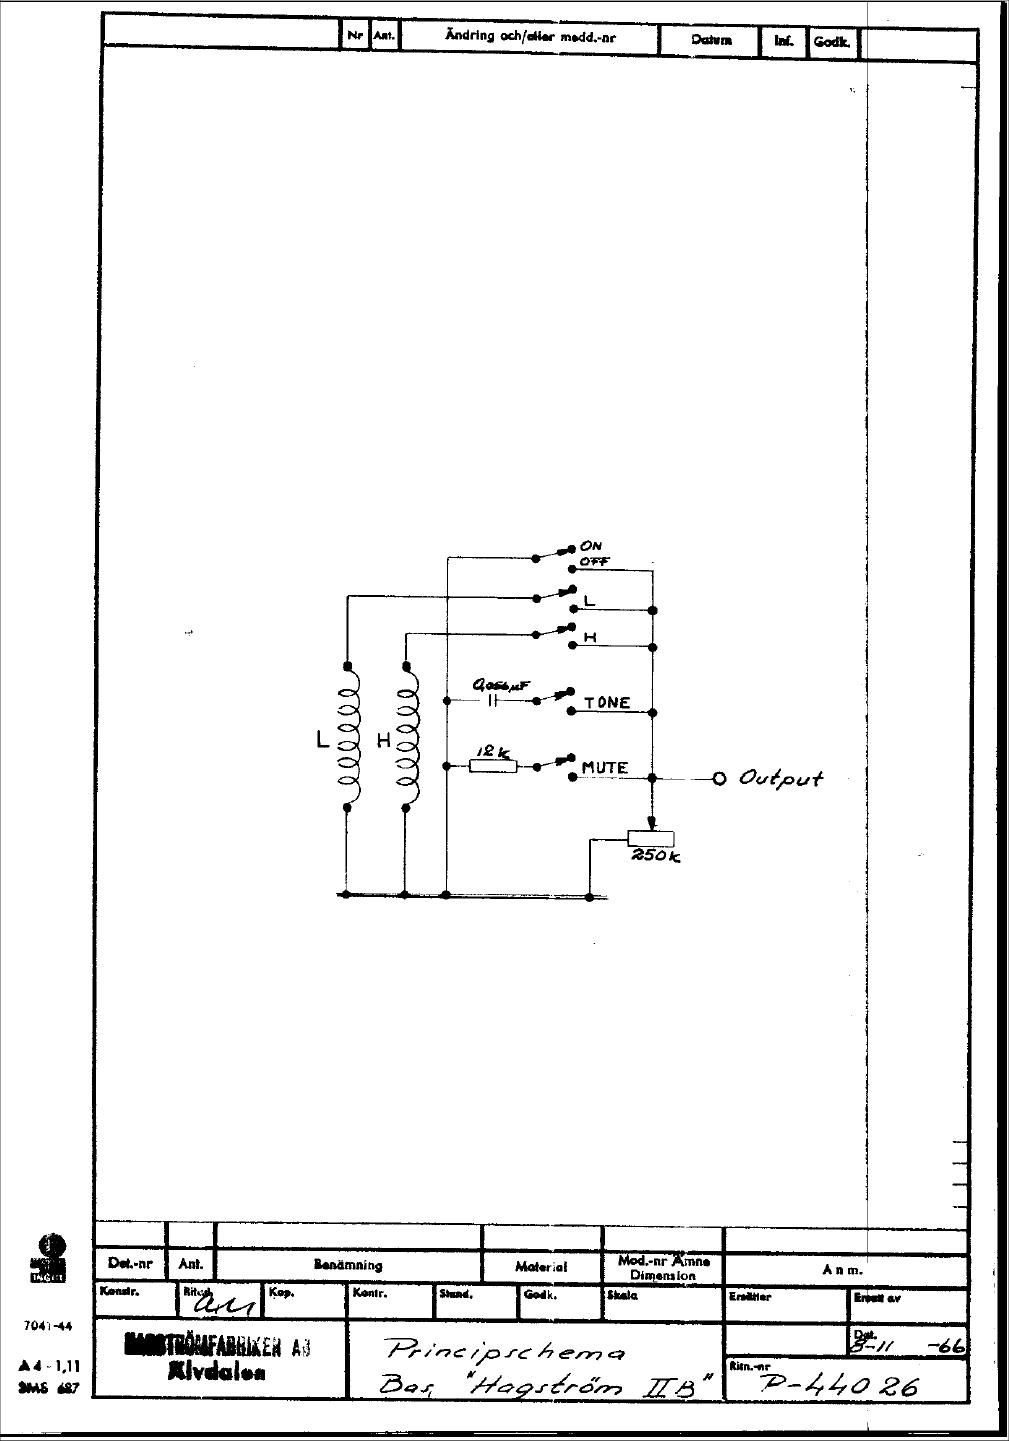 HagstromIIB 1966 hagstr�m schematics viking 0322-06 wiring diagram at readyjetset.co